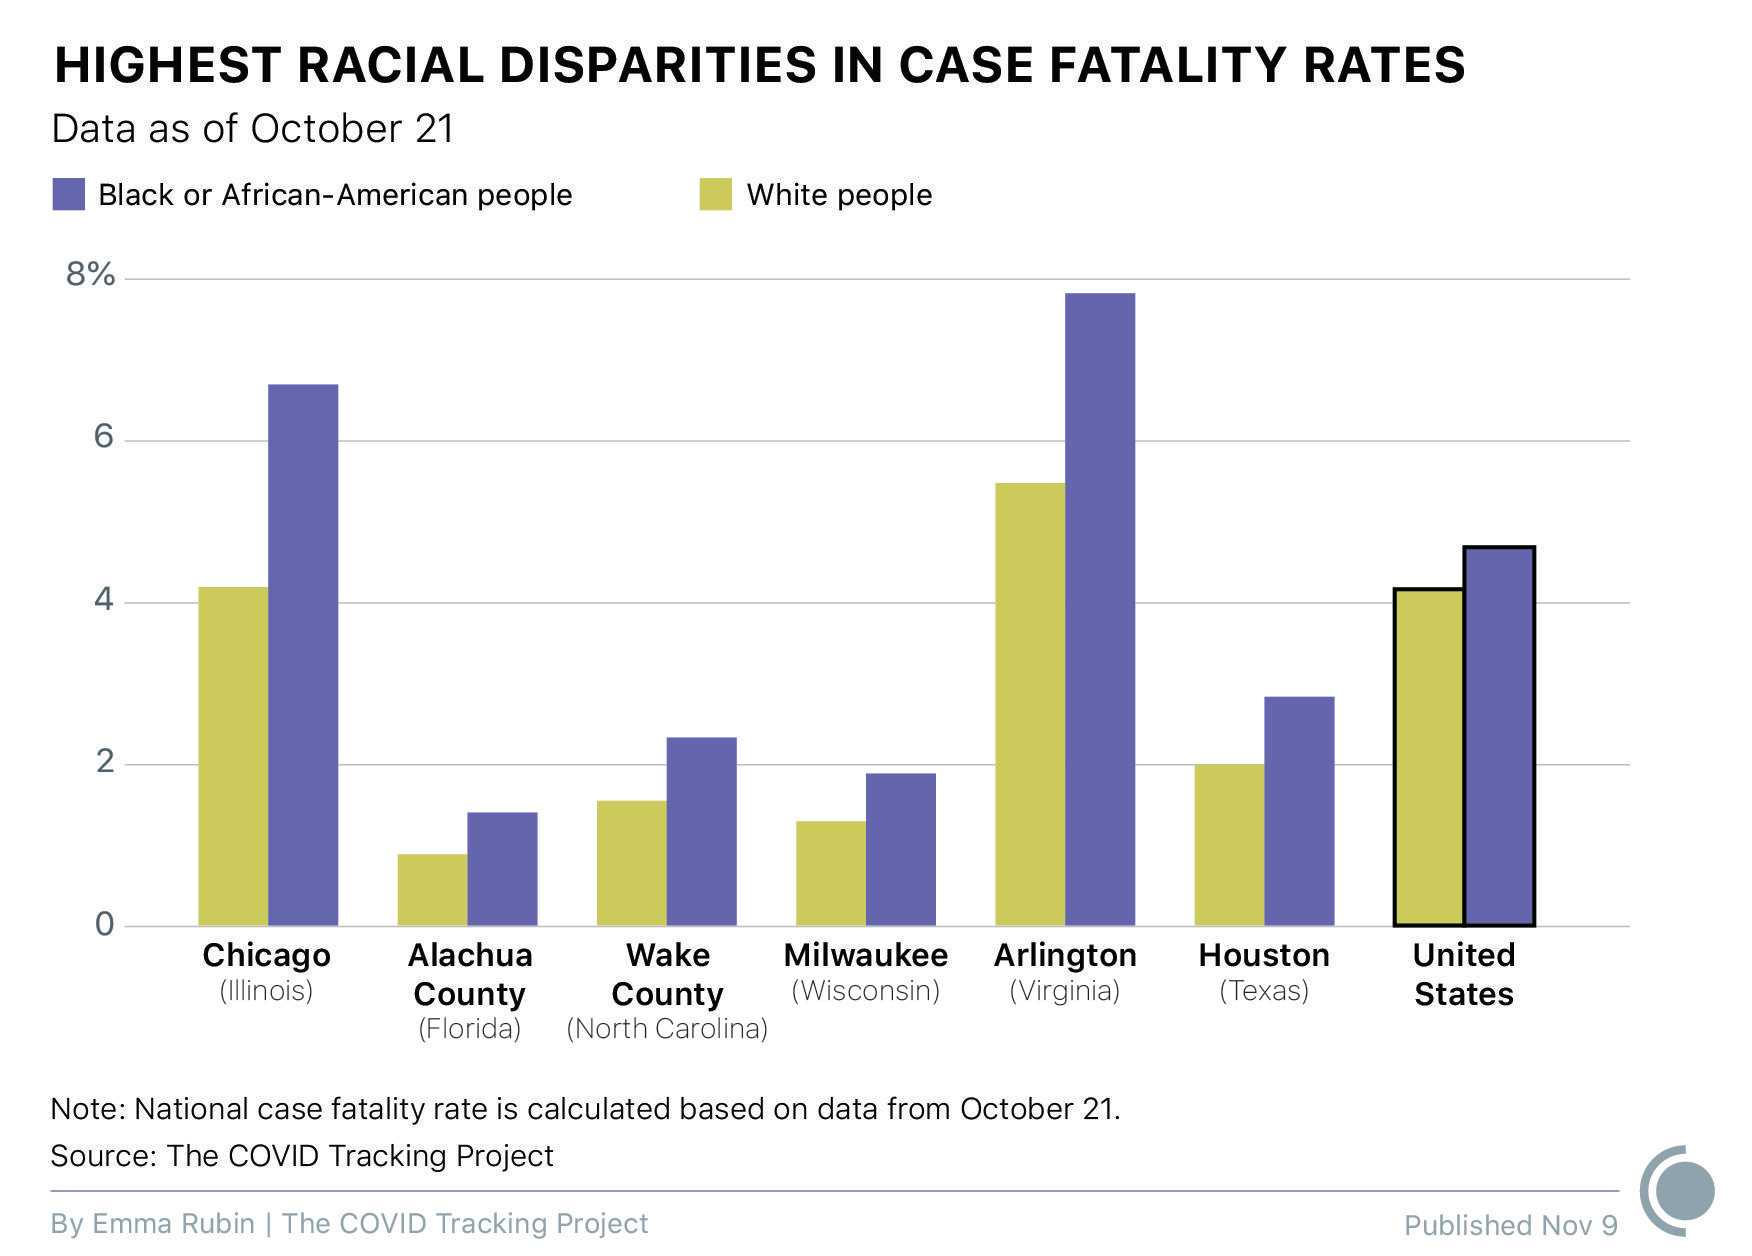 A double bar graph compares the case fatality rates among Black and African American people vs. White people for the following locations: Chicago, Illinois; Alachua County in Florida; Wake County in North Carolina; Milwaukee, Wisconsin; Arlington, Virginia; Houston, Texas; and the entire United States. For all locations listed, Black and African American people have a higher case fatality rate than White people. All data is as of October 21.